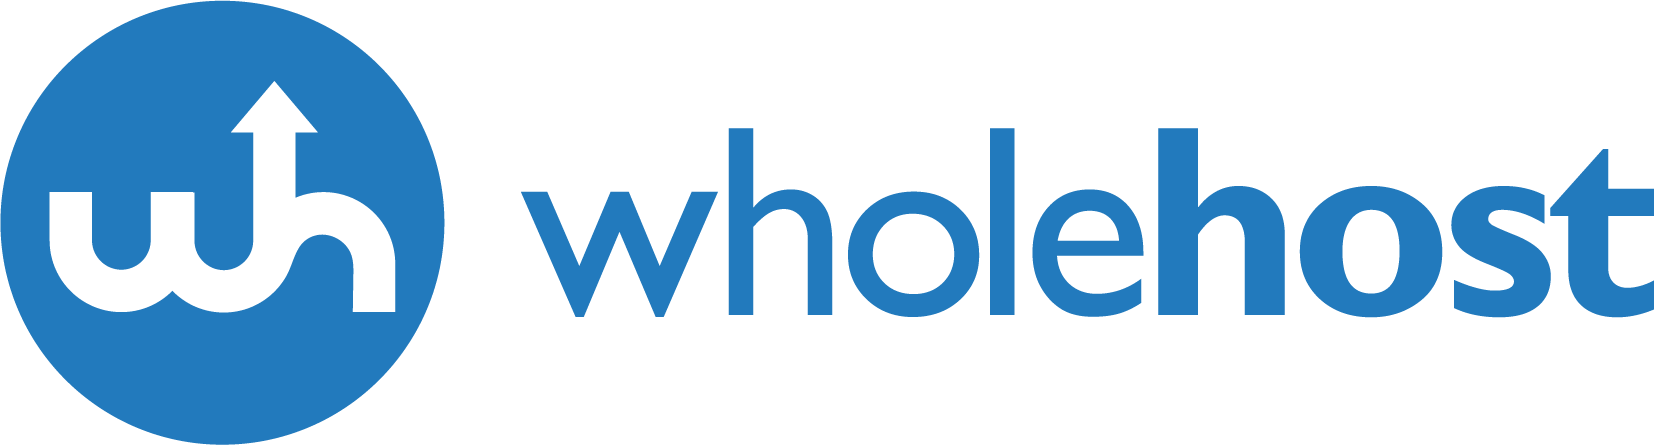 WholeHost